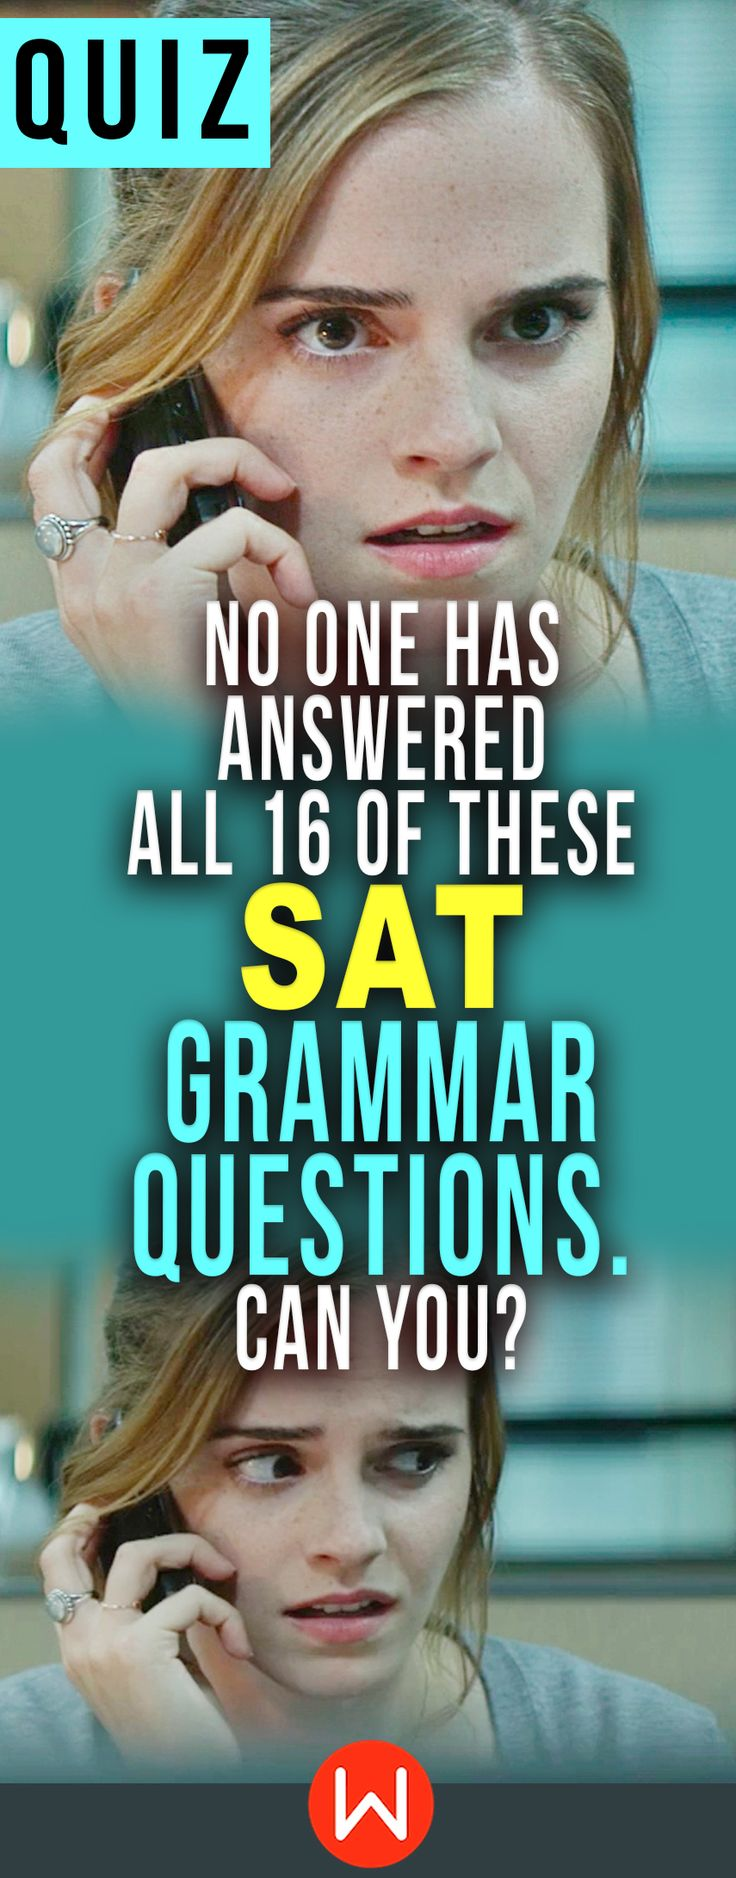 Quiz: Can you ace this SAT grammar Questions quiz? Grammar quiz, Grammar mistakes test, ESL test, SAT Grammar quiz. buzzfeed quizzes, playbuzz quiz. Are you in the top percentile for grammar?